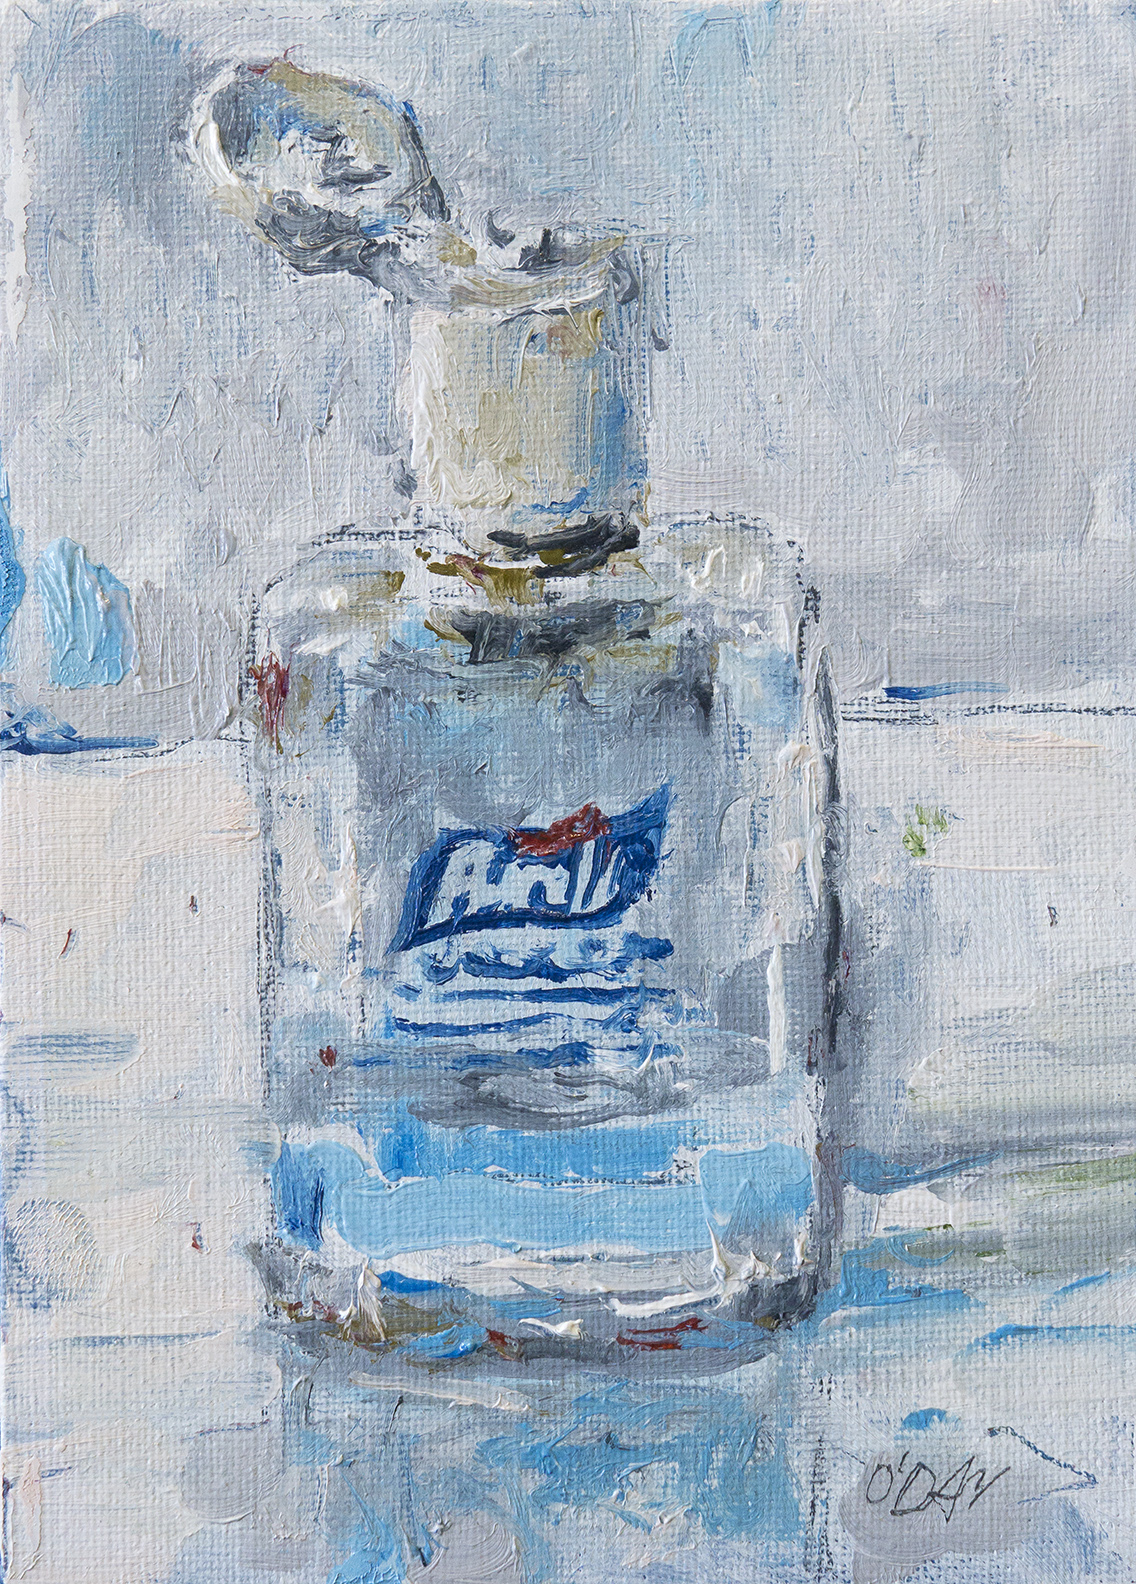 """Purell, oil on canvas, 7x5"""", 2020 SOLD"""